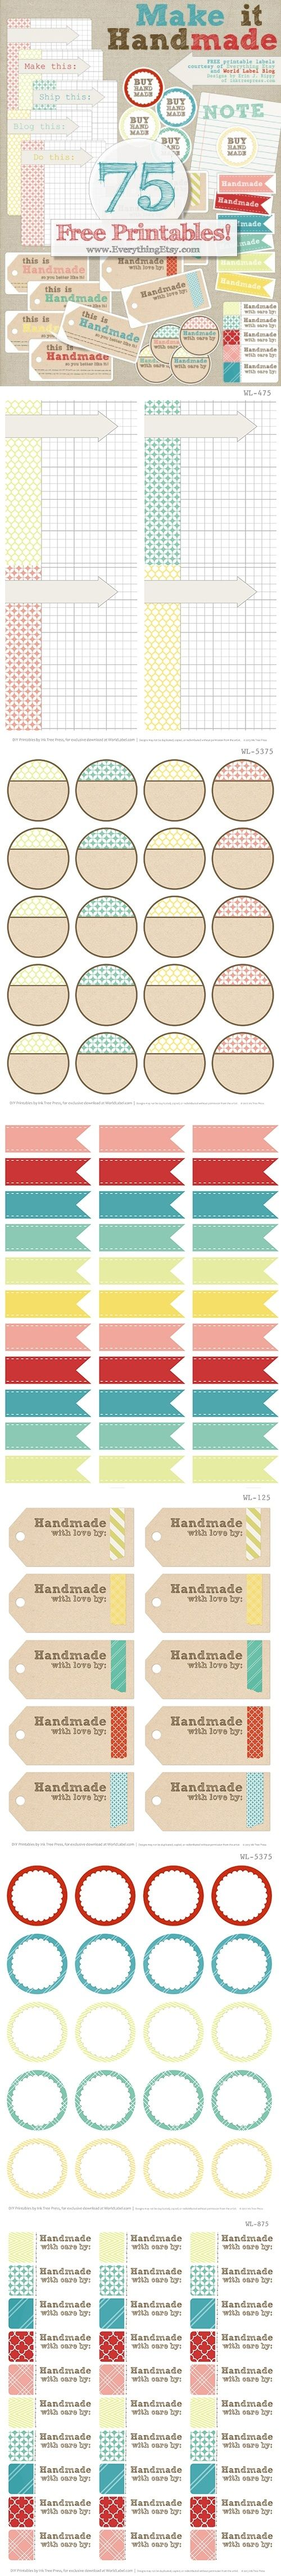 Many free printable labels - with easy to customize text by dbspecial